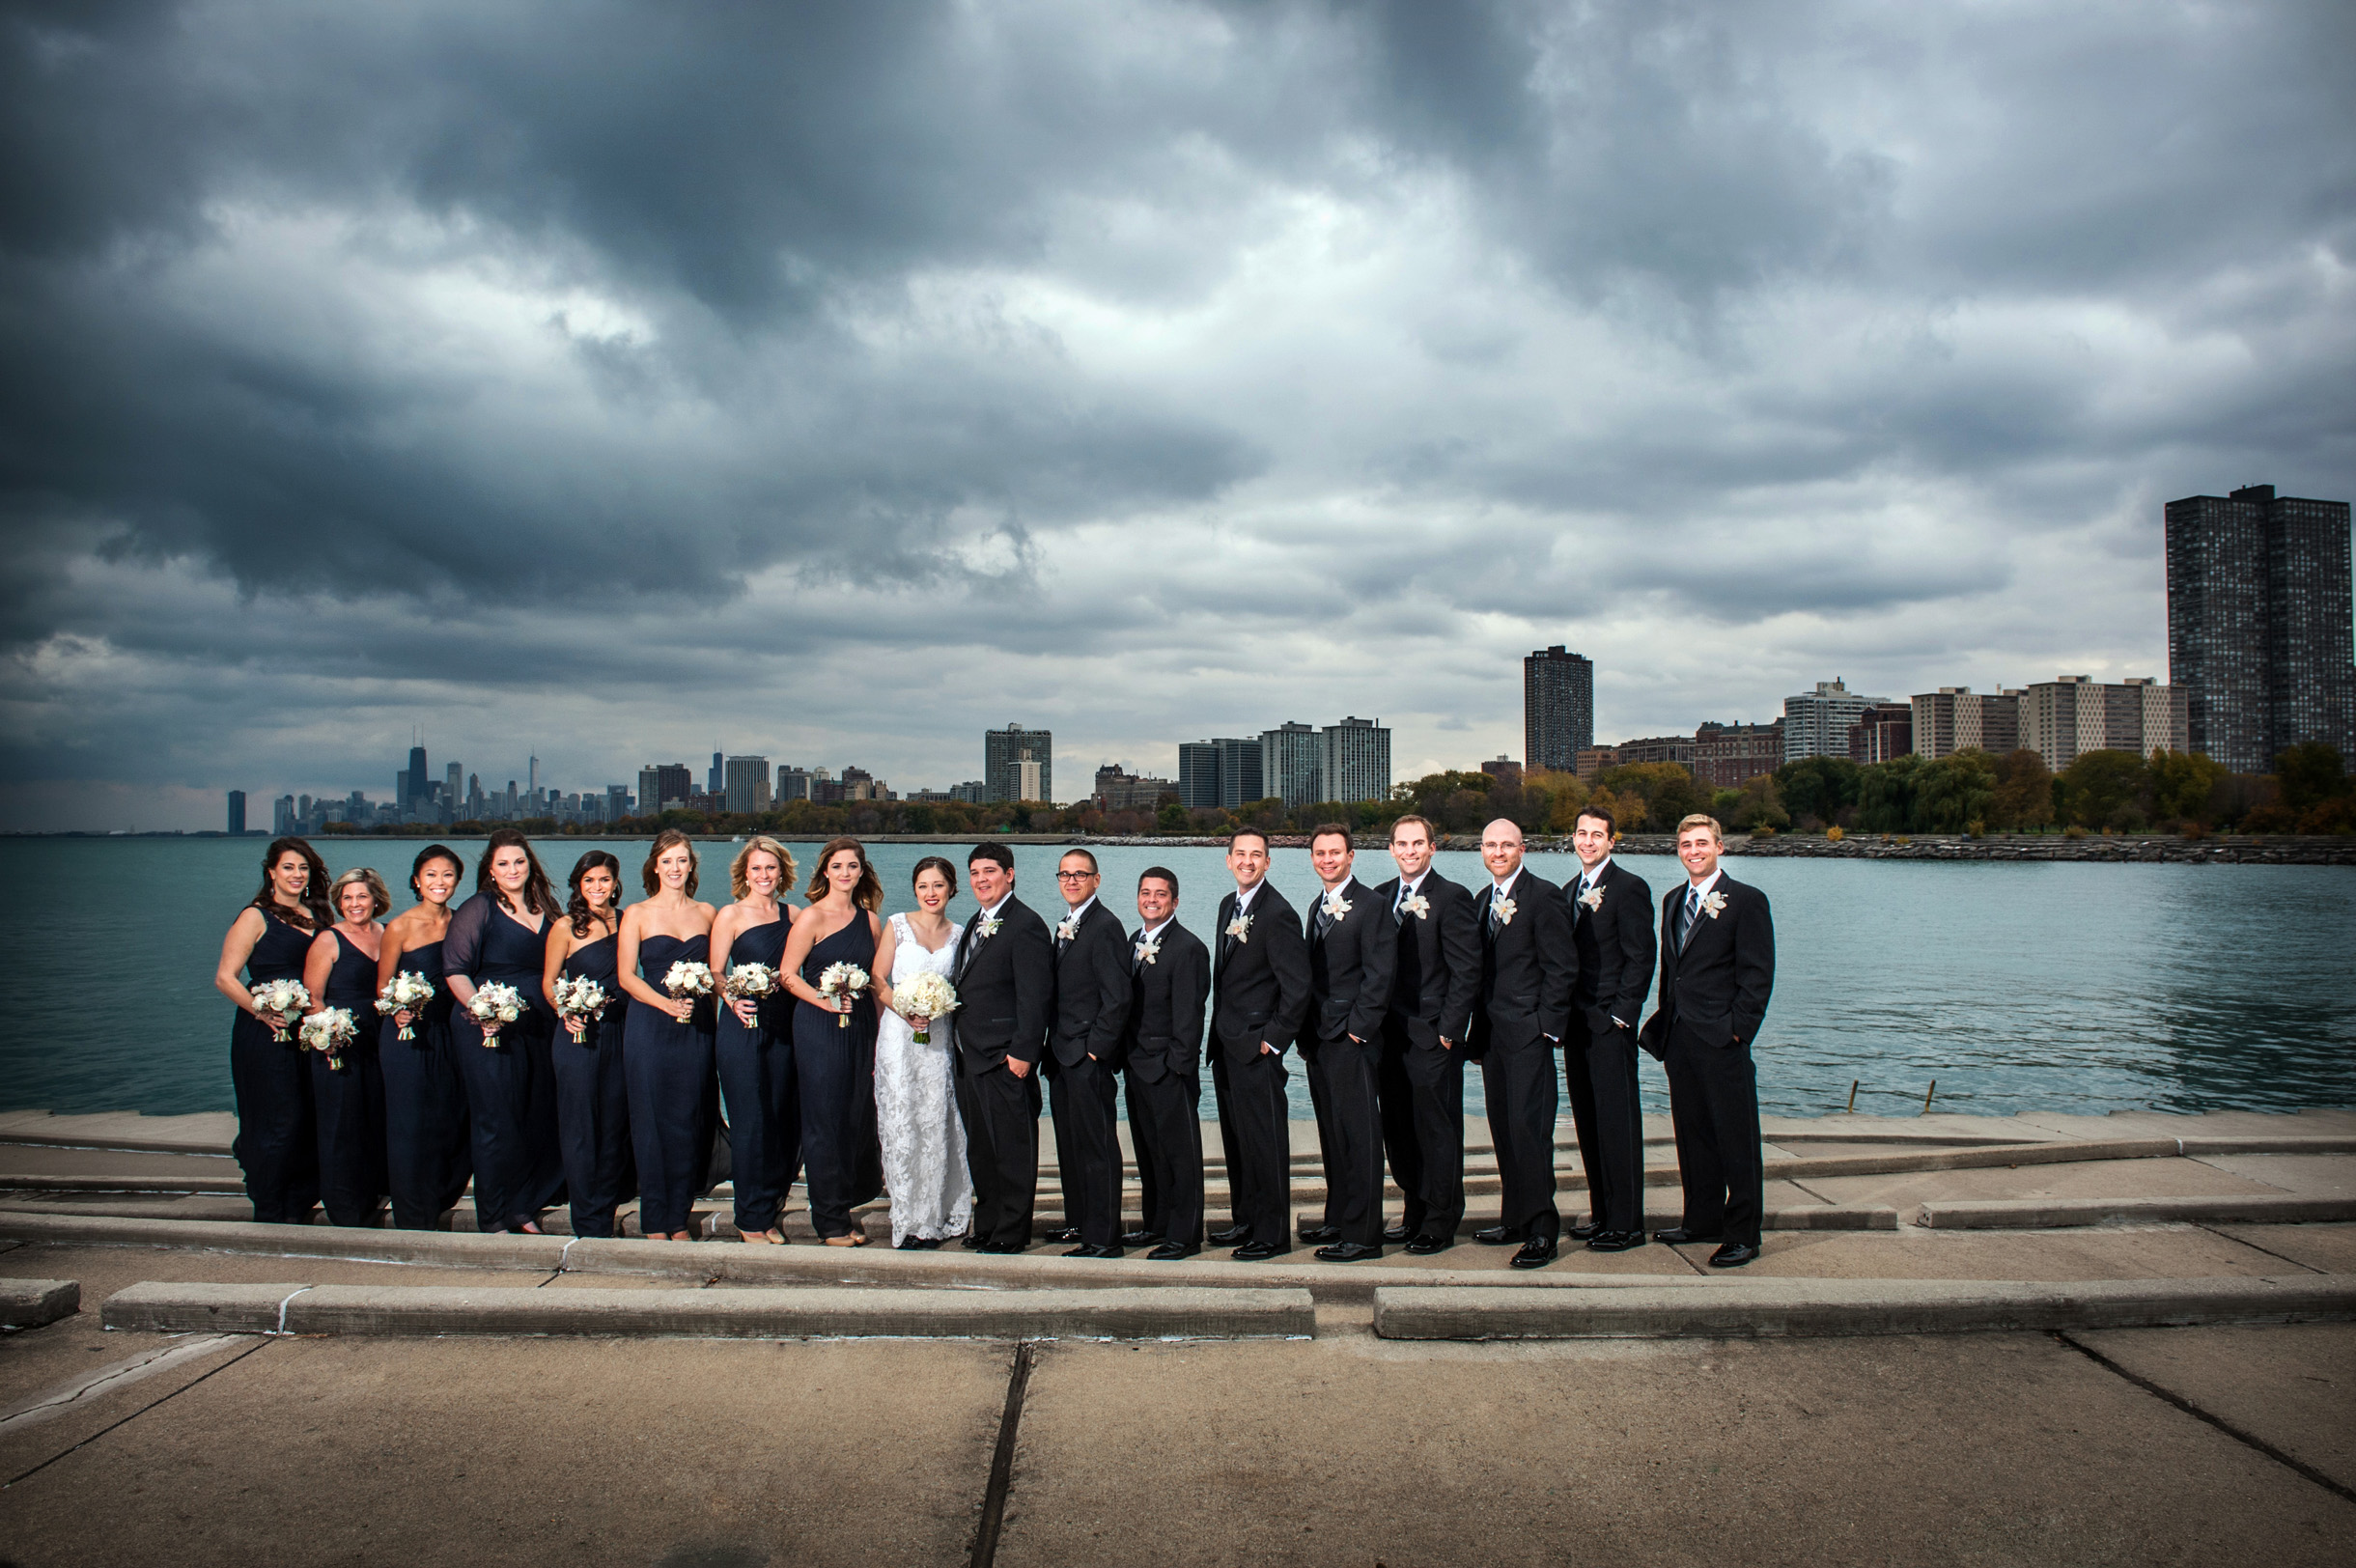 Wedding Party at Montrose Harbor with Chicago skyline in background